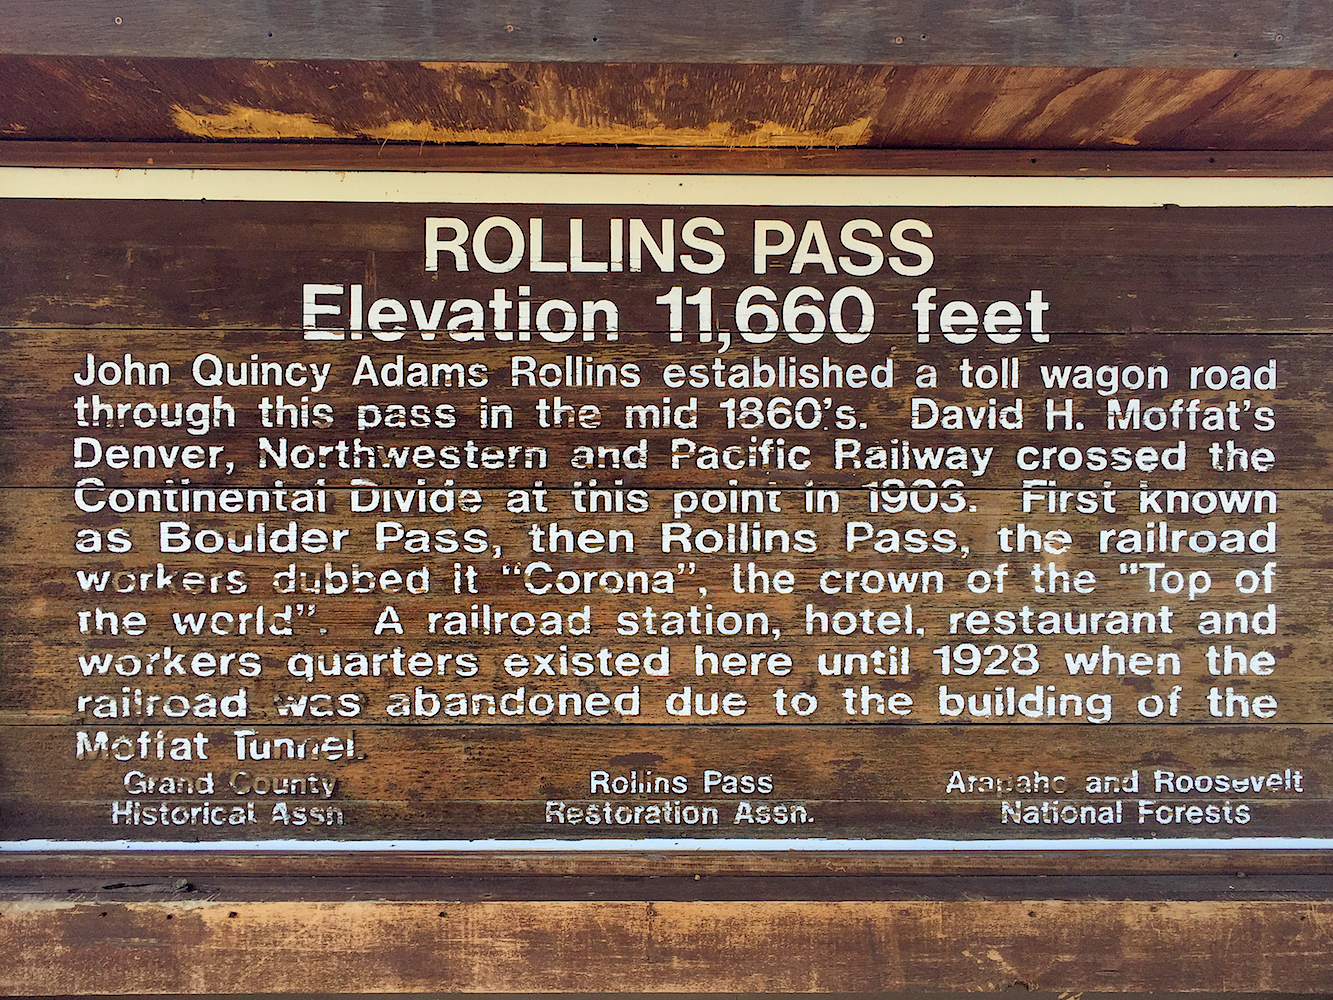 Informative Sign on Rollings Pass, Image # 3448